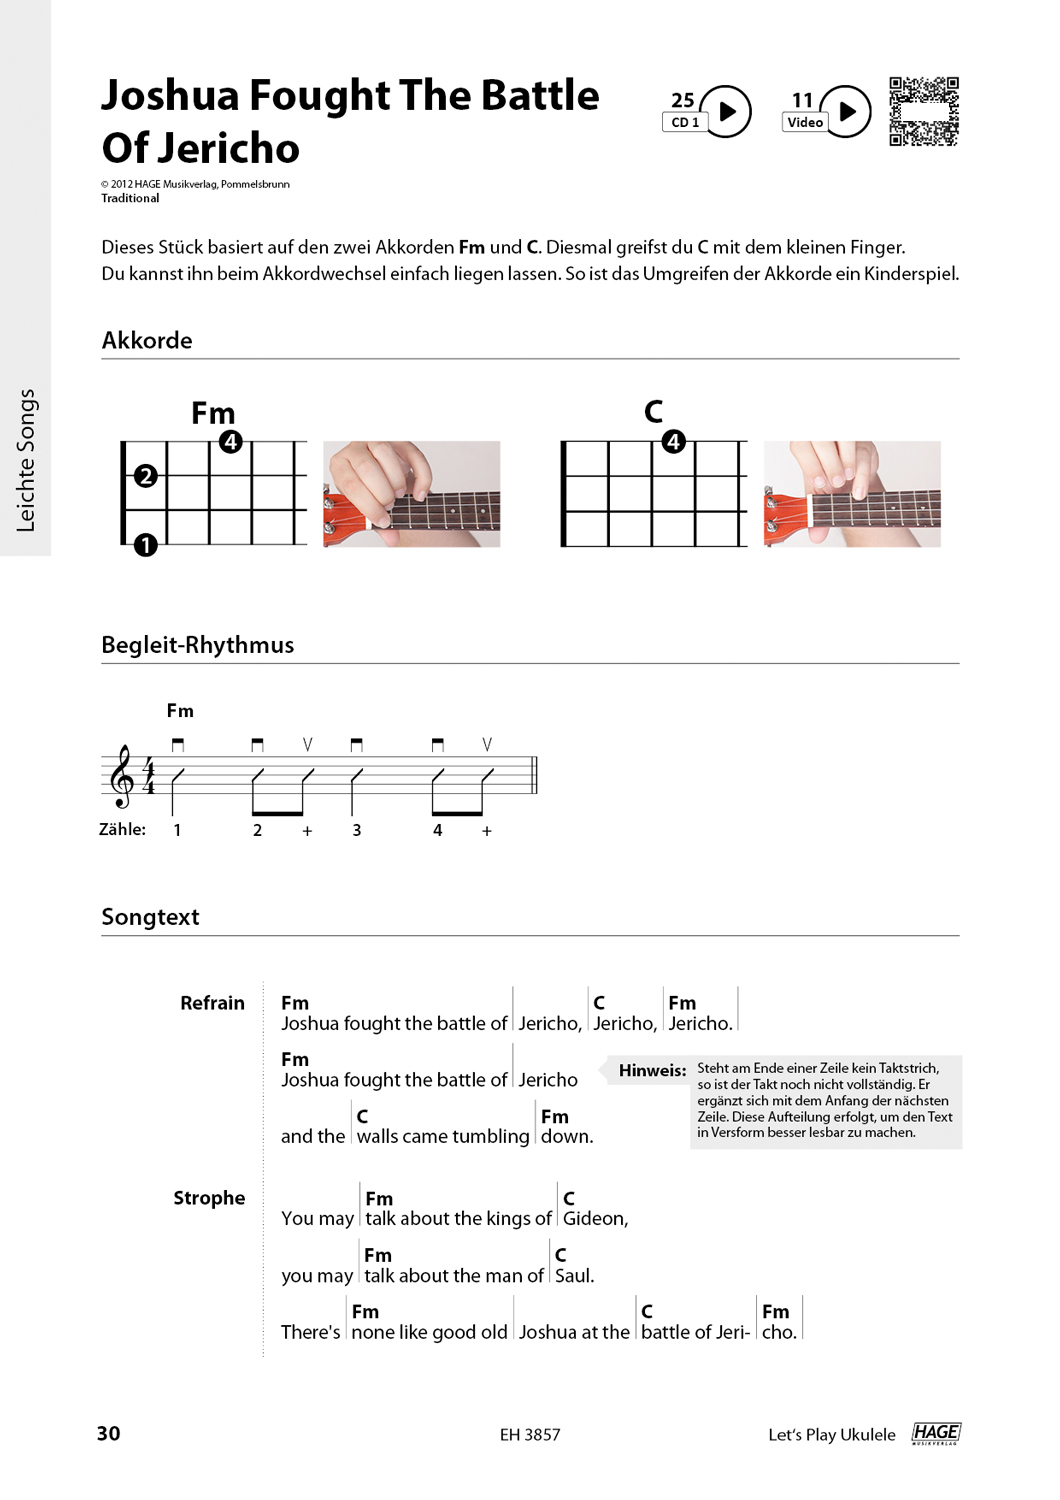 Let's Play Ukulele (with 2 CDs) Pages 7